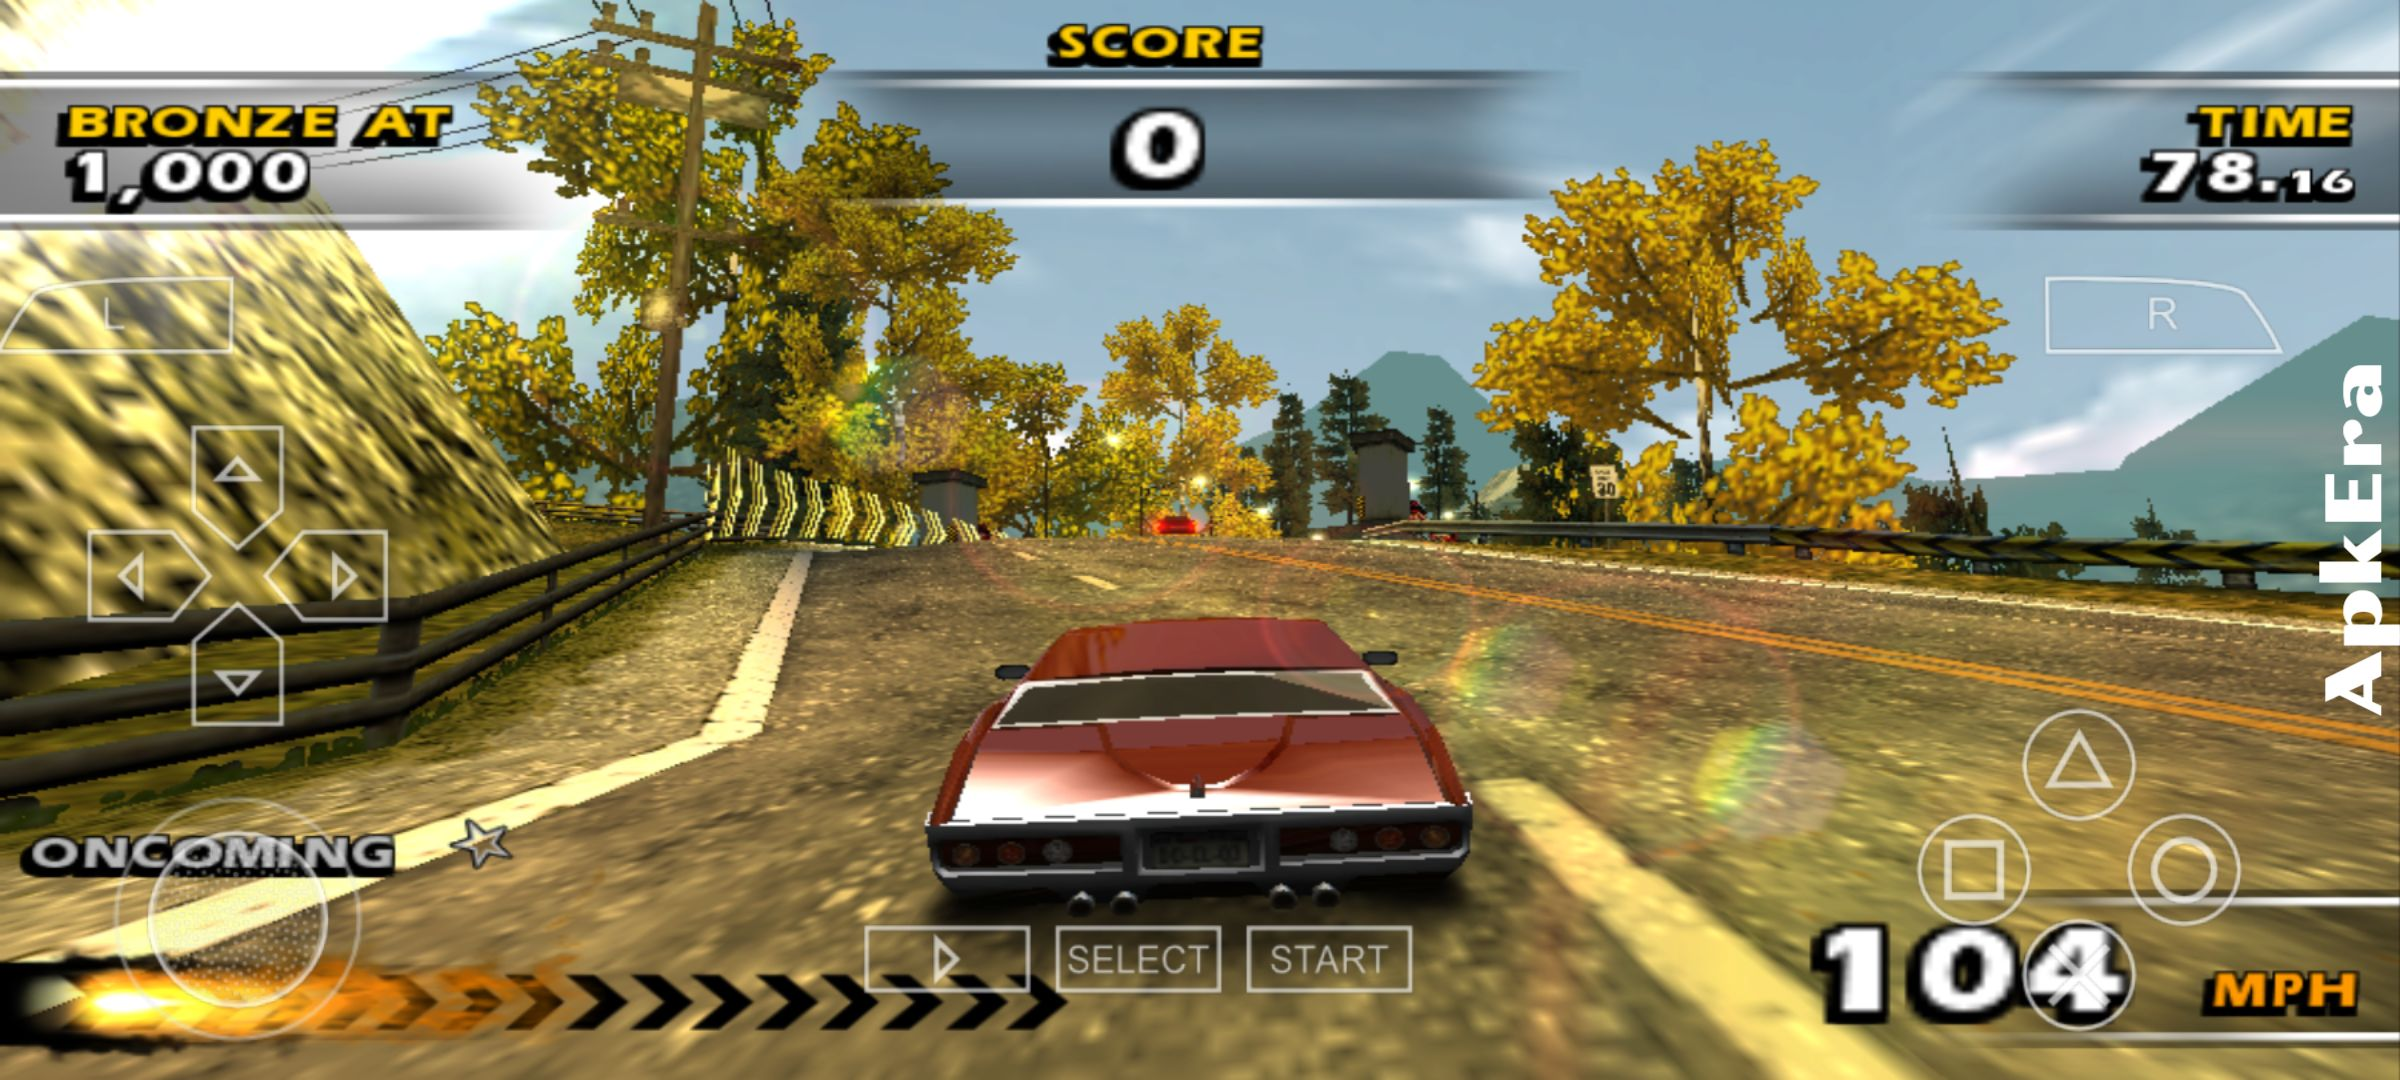 10+ Best PPSSPP Racing Games for Android